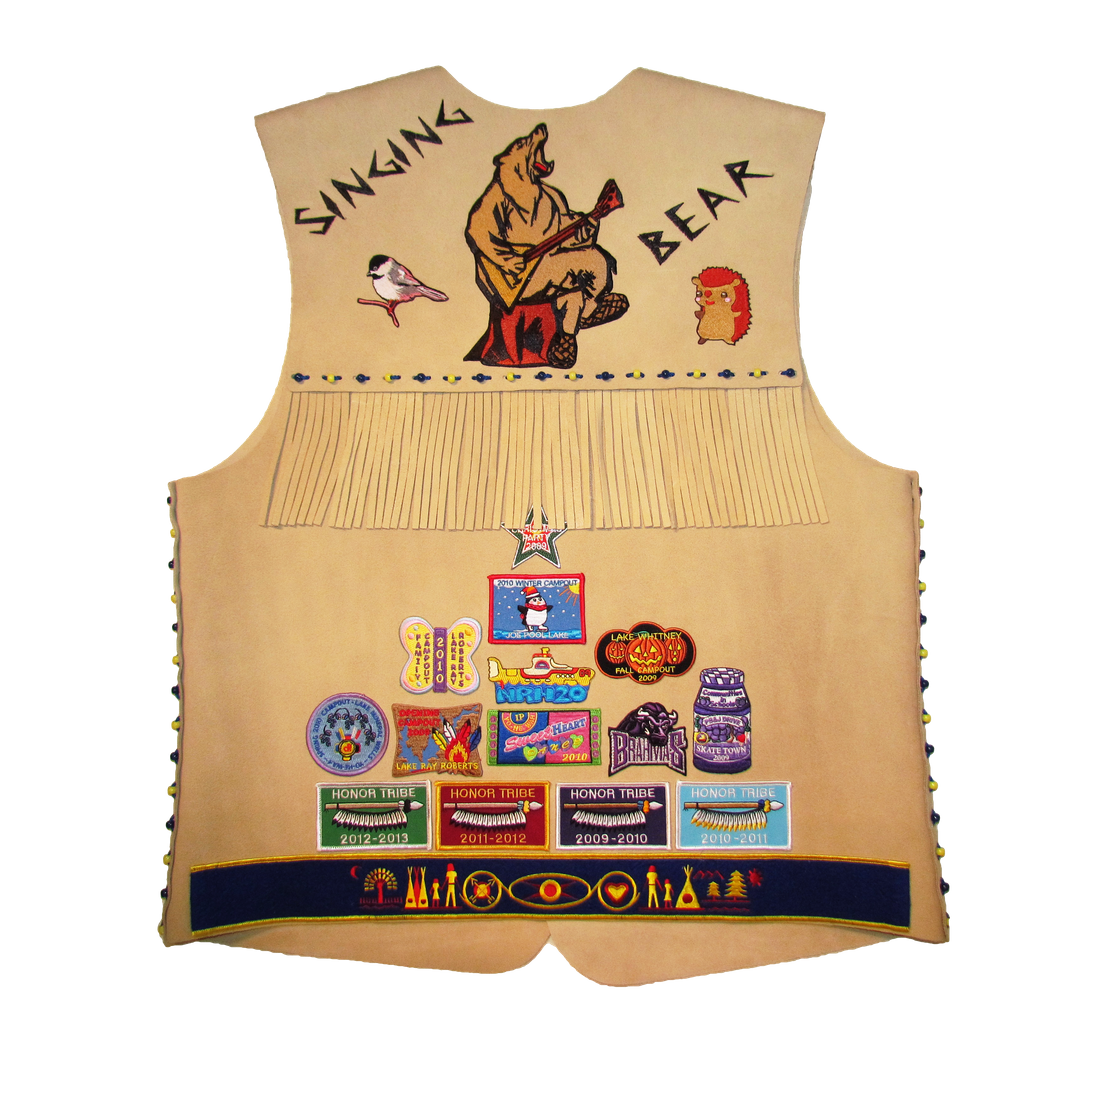 vest, suede, indian, princess, guides, DFW, event, custom, embroidery, patch, assembly, extra, service, game, camping, camp